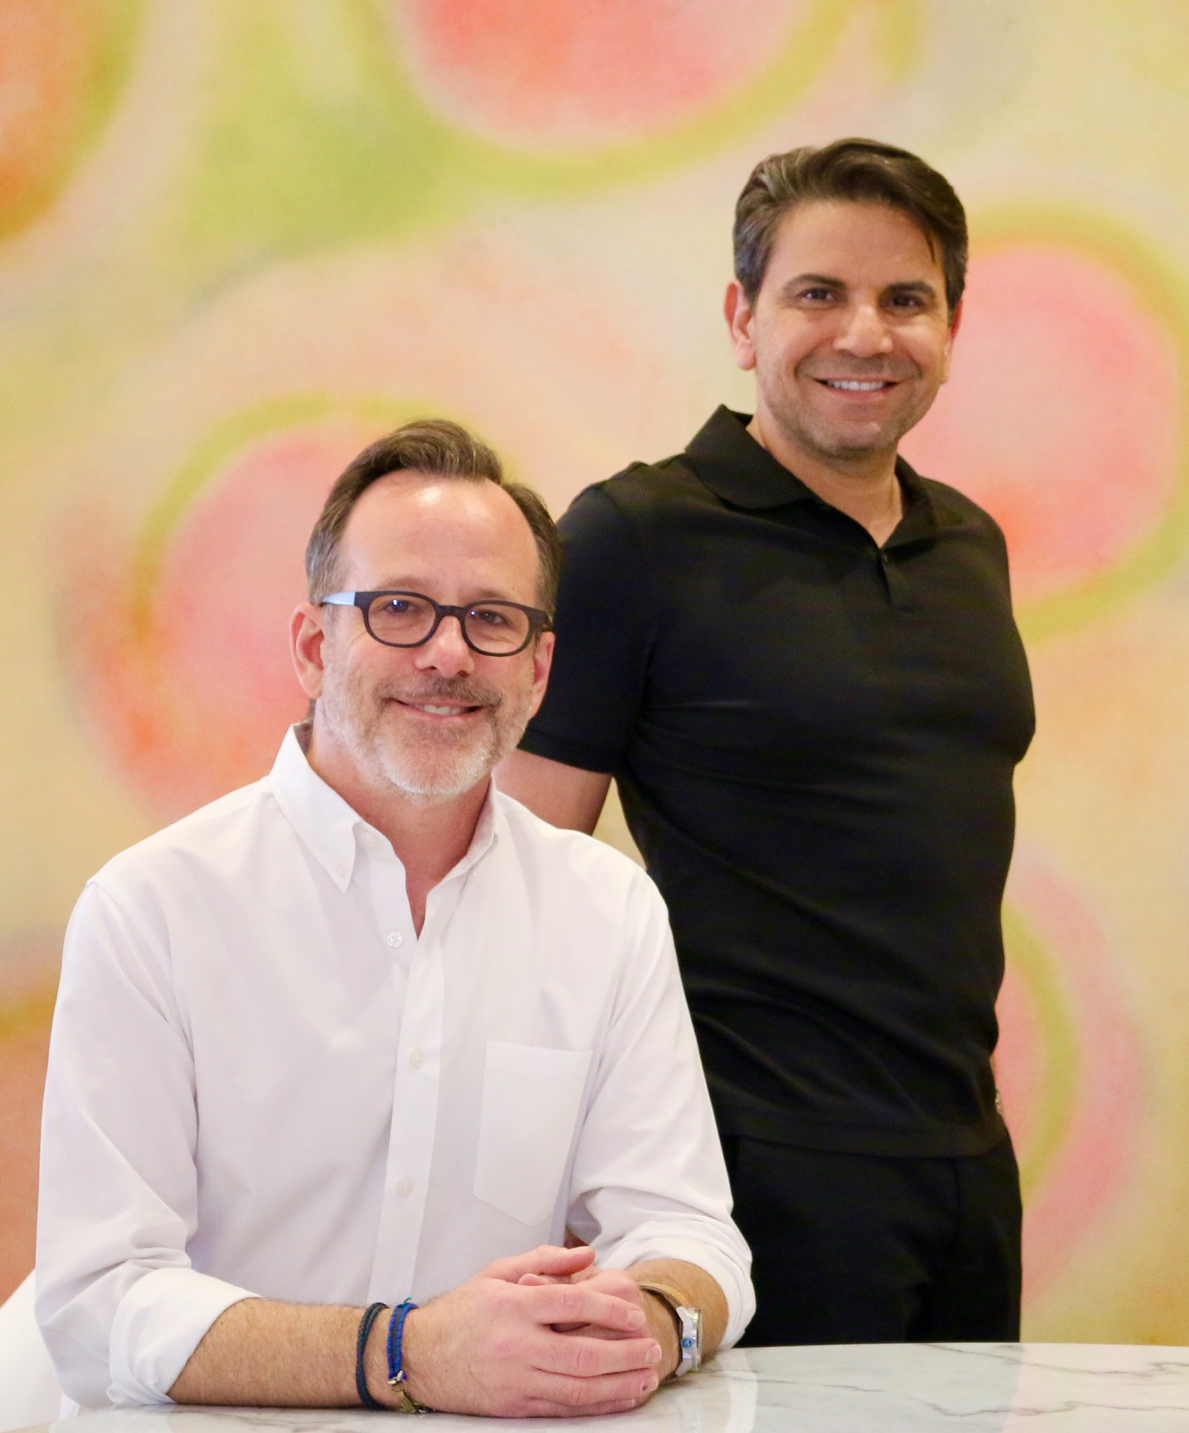 Alan Conover and Cion Ortego, owners of Hue Salon in Houston, Texas.